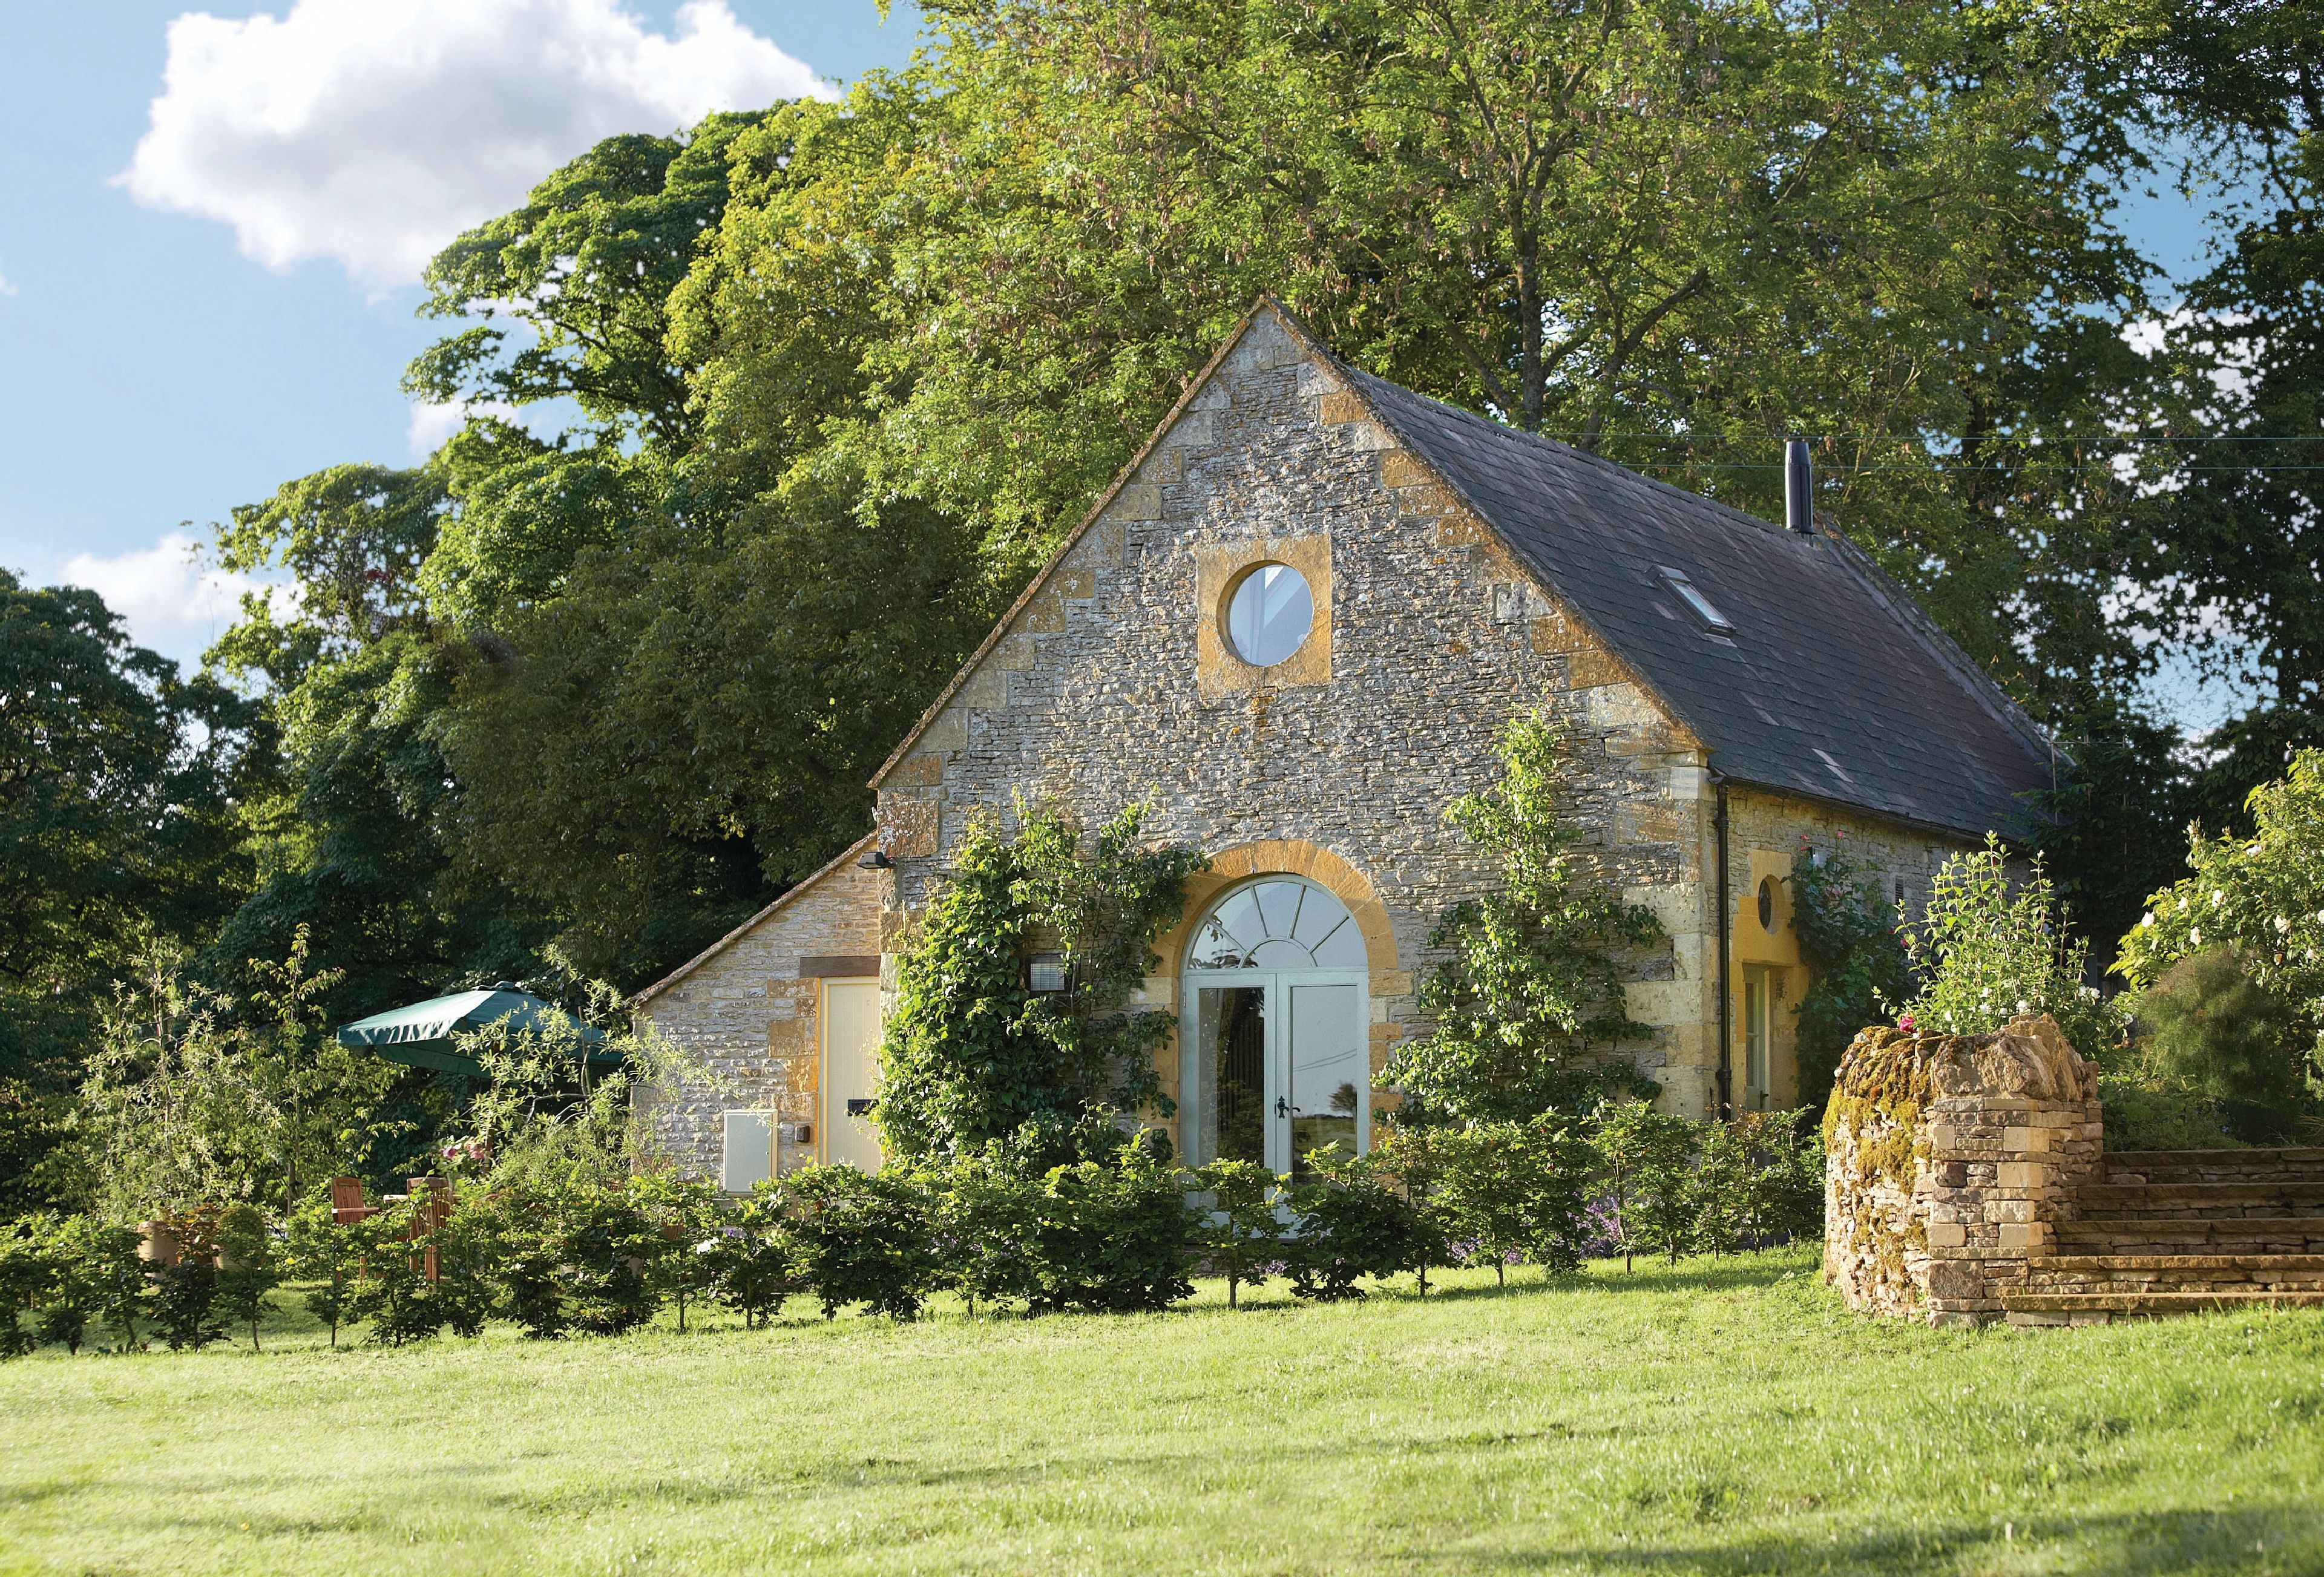 a hall old place perfect to accommodation wedding before cottage it get the furnished day your night house three venue for is stylishly renovated coach blake and at big beautifully bedroom ideal